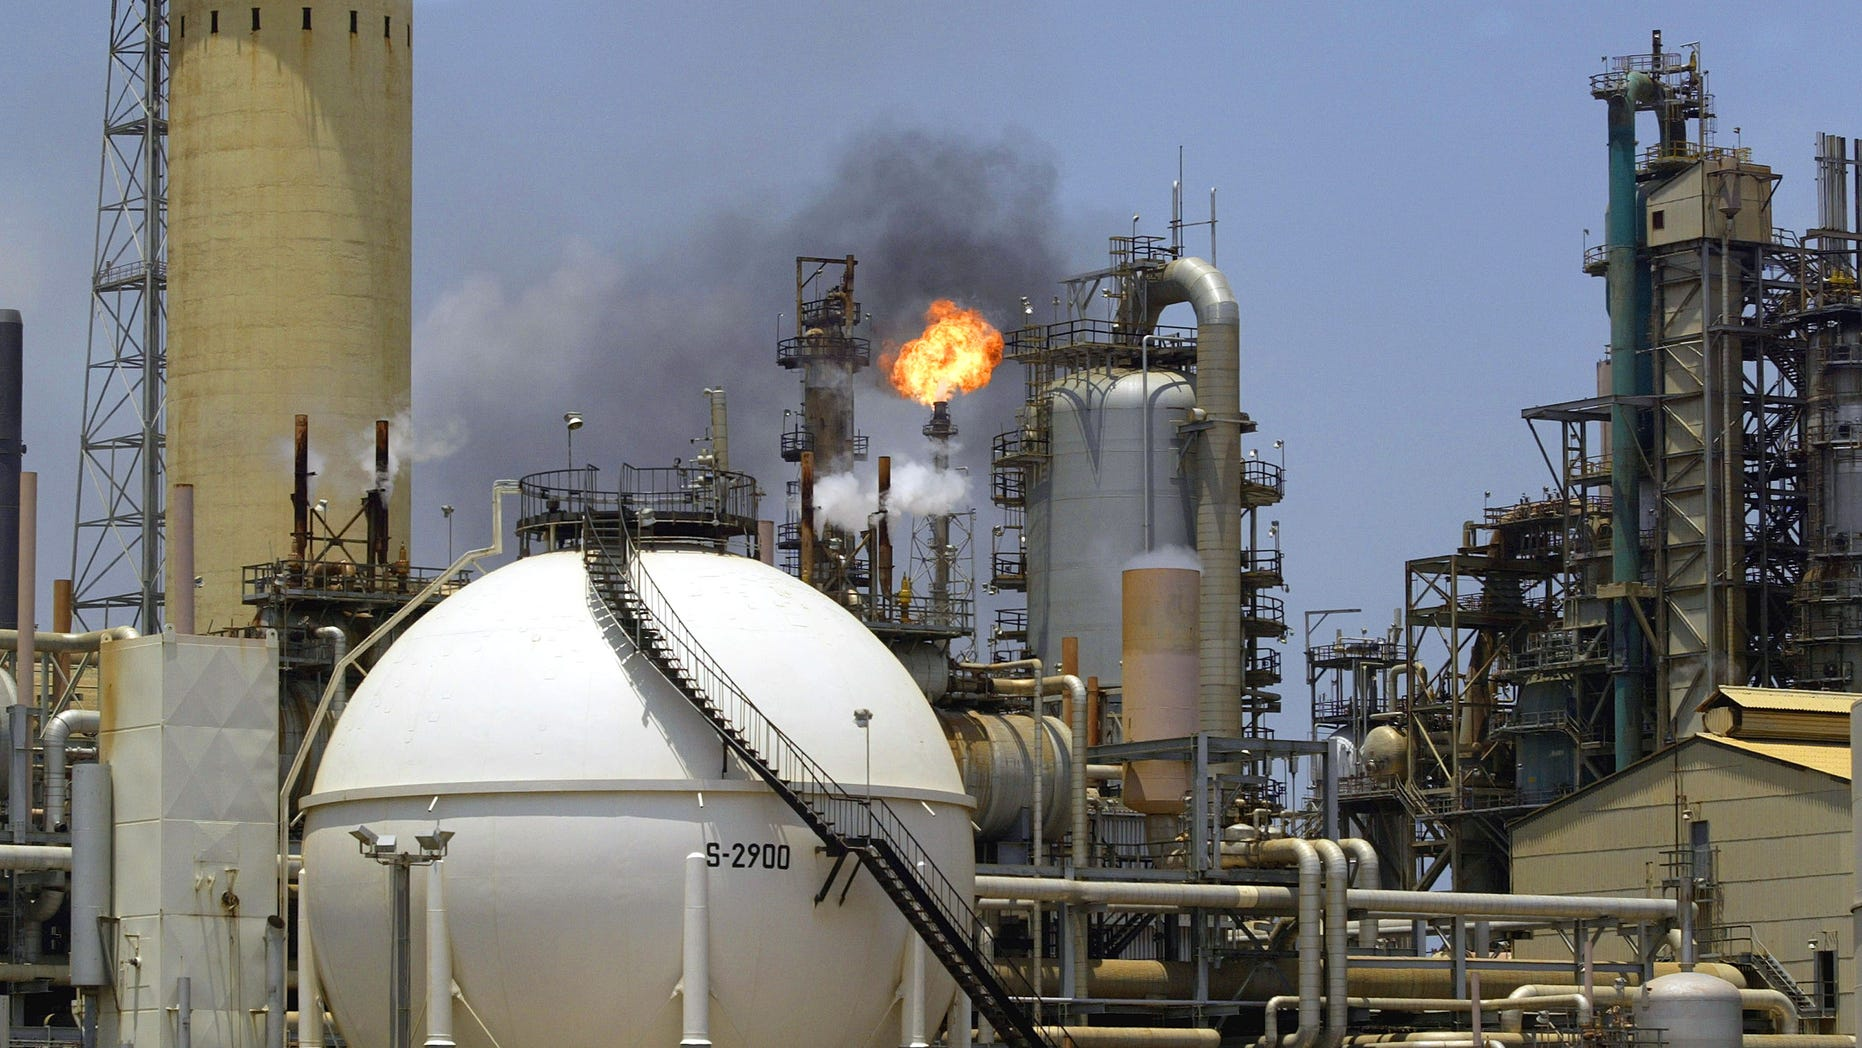 Oil refinery complex of Amuay-Cardon in Paraguana, located about 350 miles West of Caracas, Venezuela.